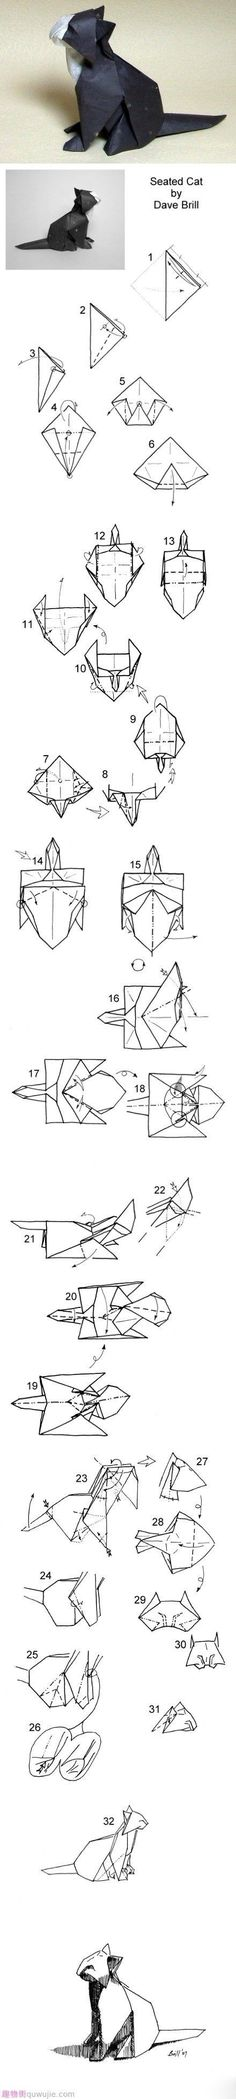 Origami Seated Cat Folding Instructions